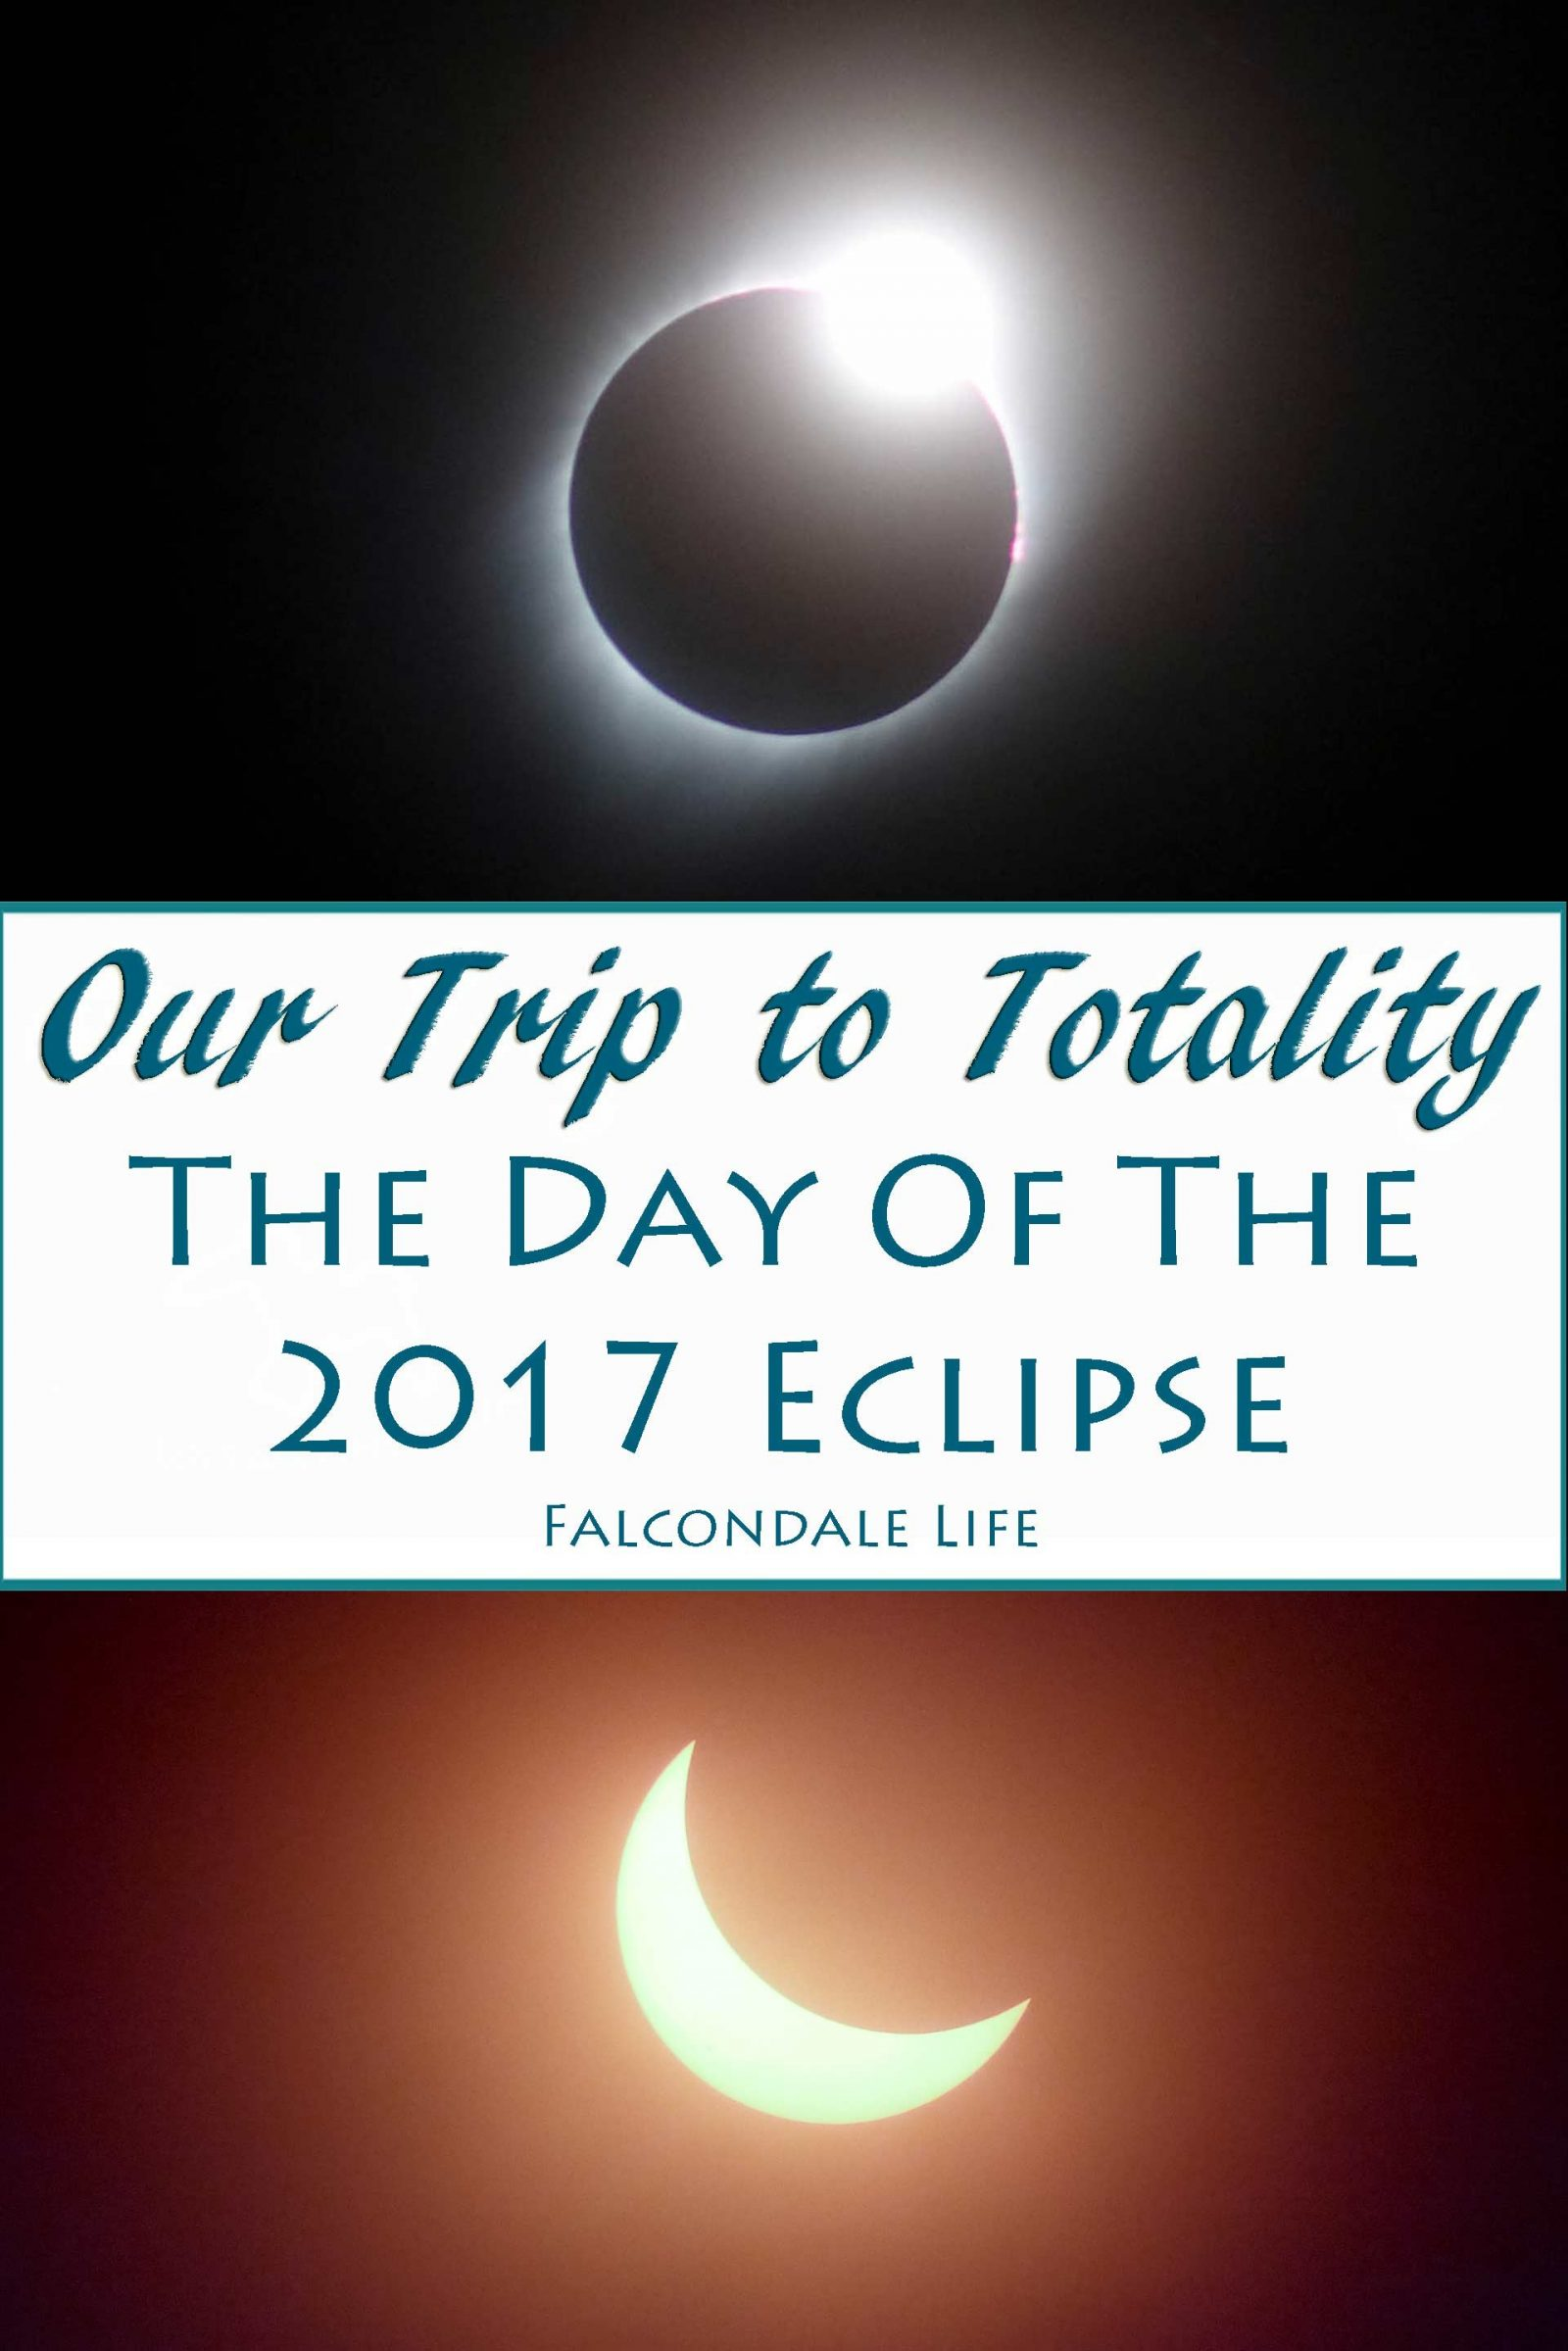 Our Trip to Totality: The Day of the 2017 Eclipse